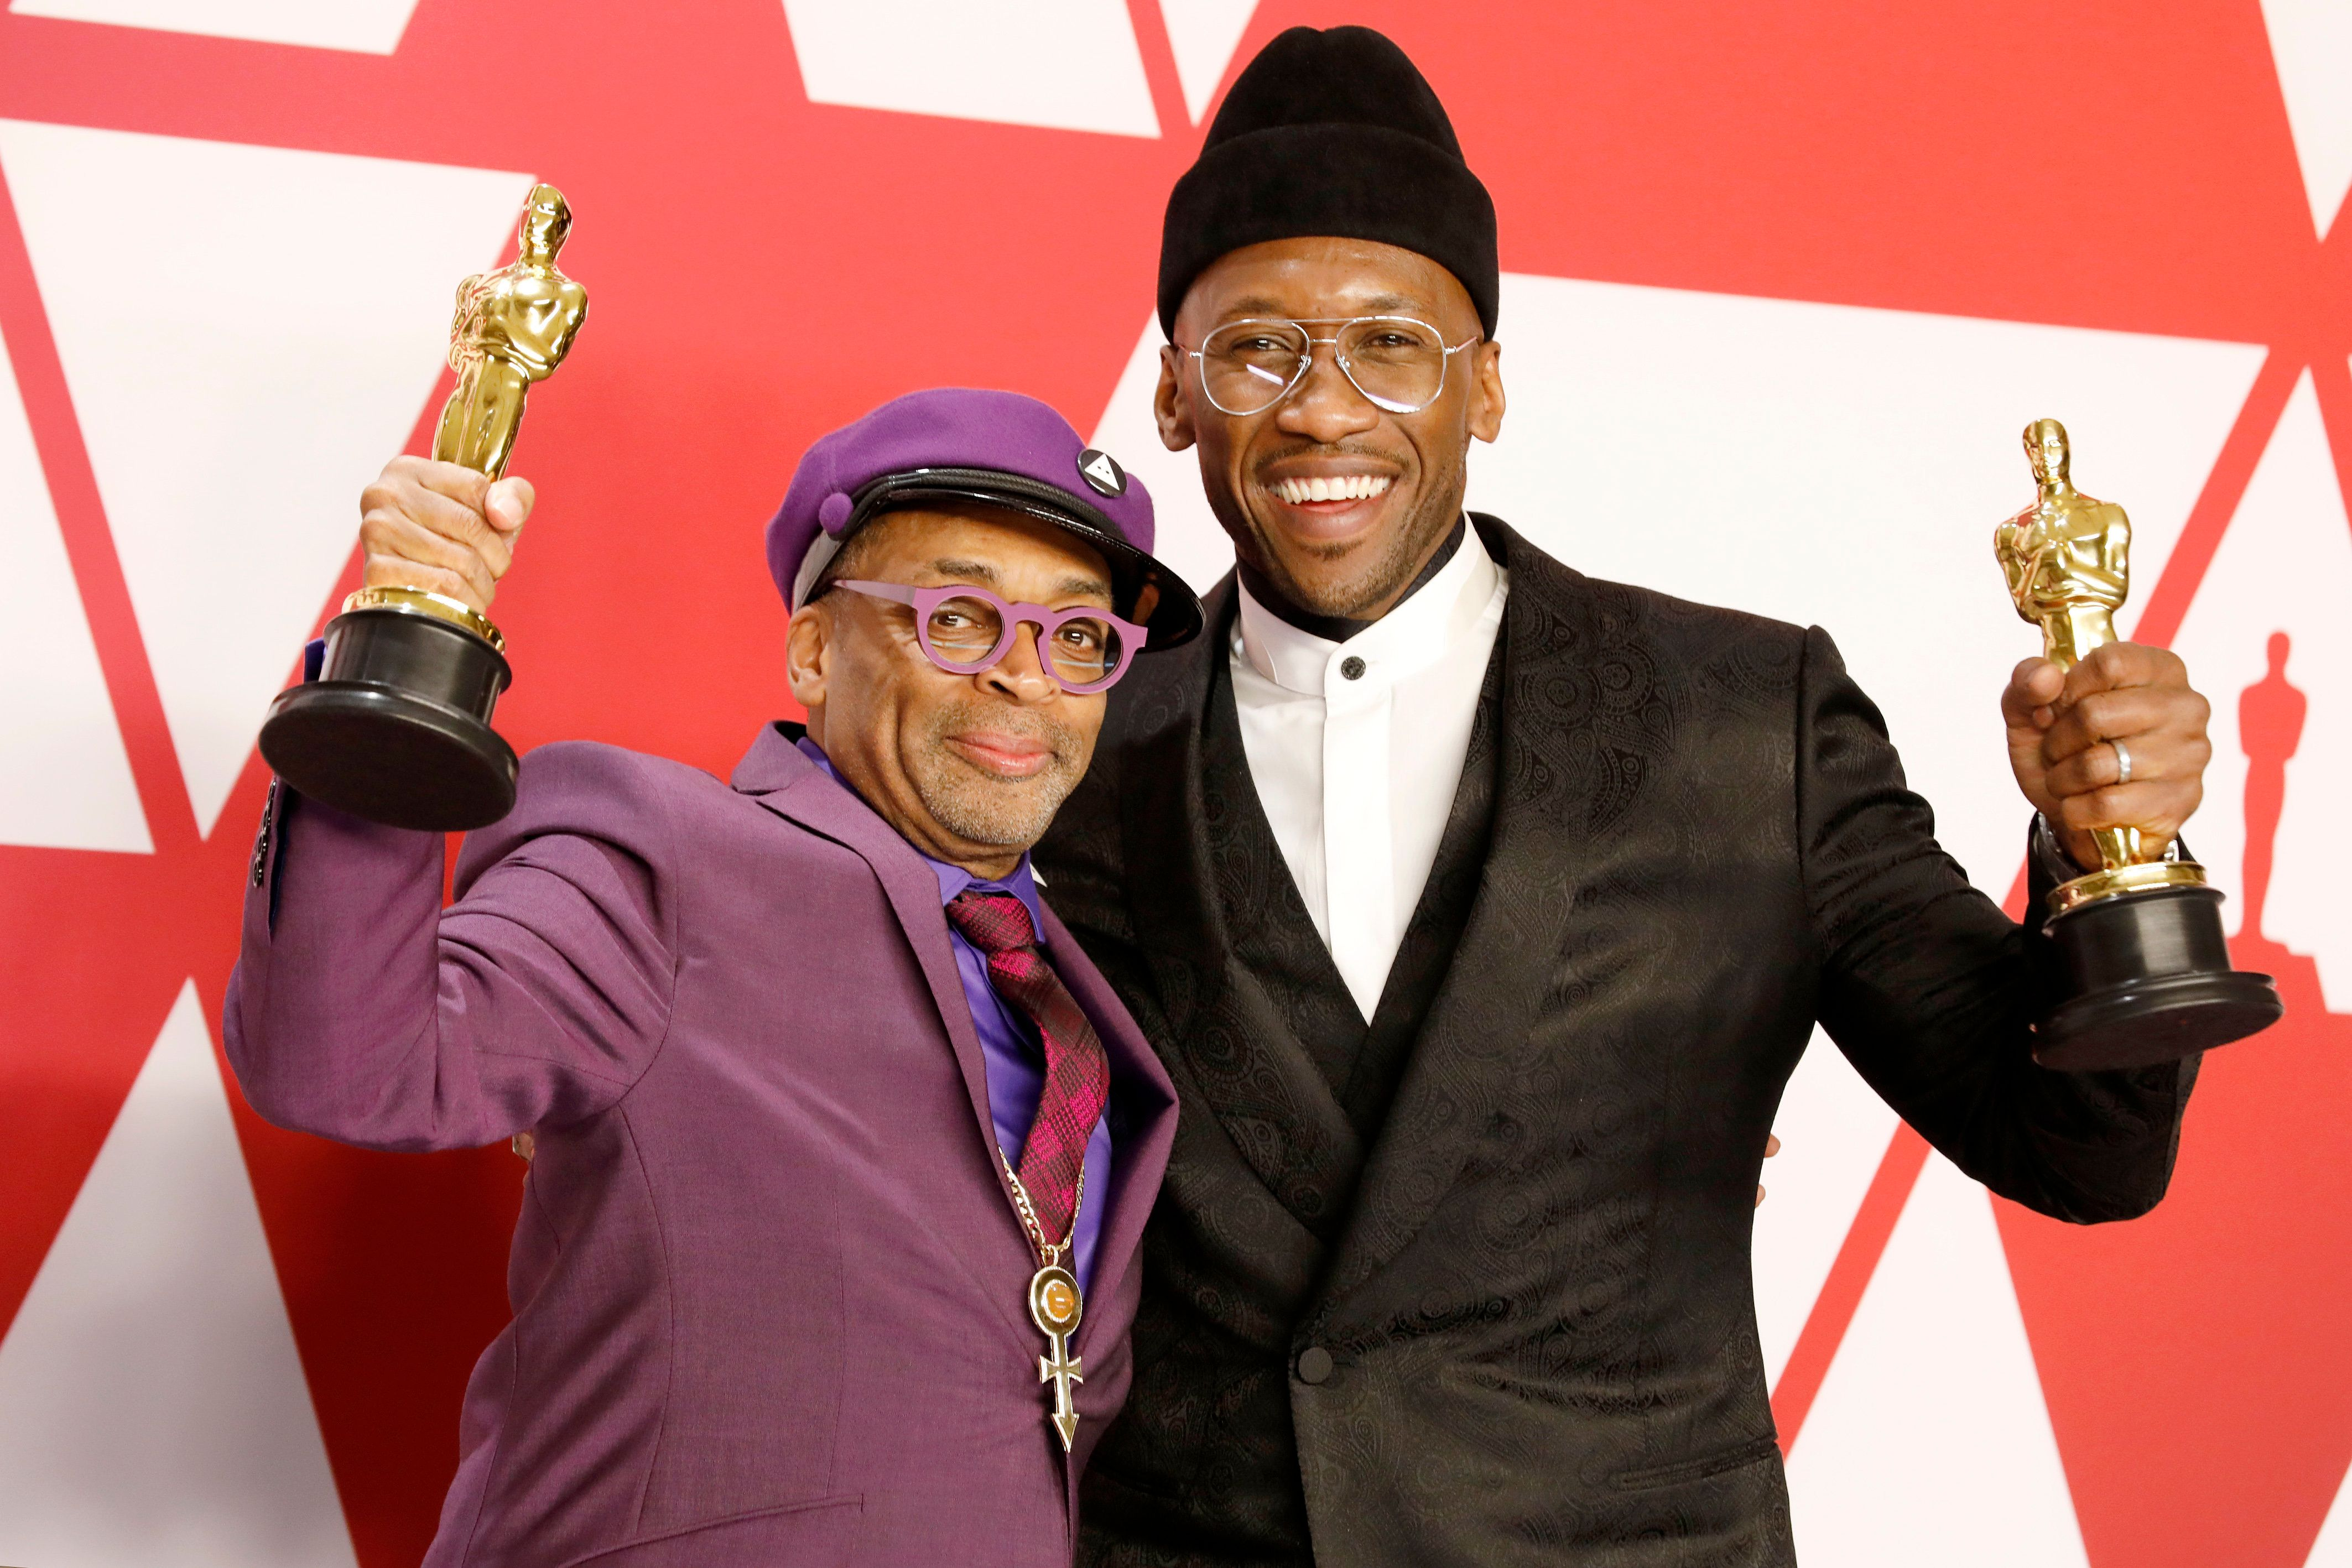 Spike Lee (Best Adapted Screenplay for 'BlacKkKlansman') and Mahershala Ali (Best Actor in a Supporting Role: Green Book) 91st Annual Academy Awards press room at the Dolby Theater in Hollywood, California on February 24, 2019. (Photo credit should read P. Lehman / Barcroft Images / Barcroft Media via Getty Images)